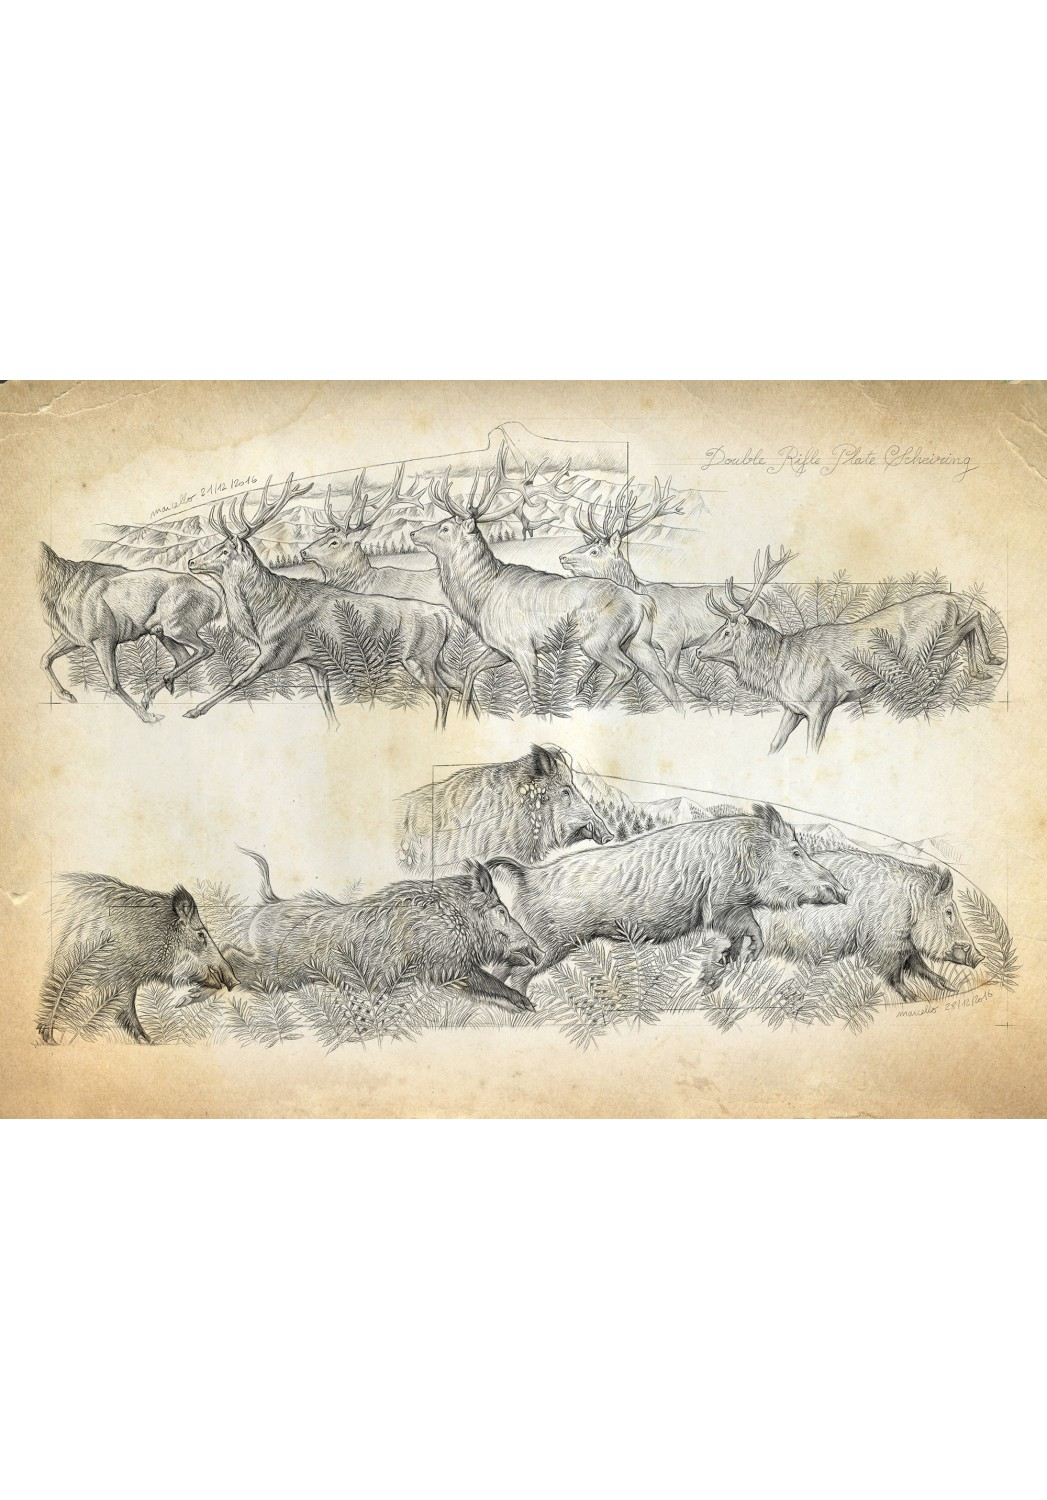 Marcello-art: Wish Card 359 - Engraving of wild boar herds